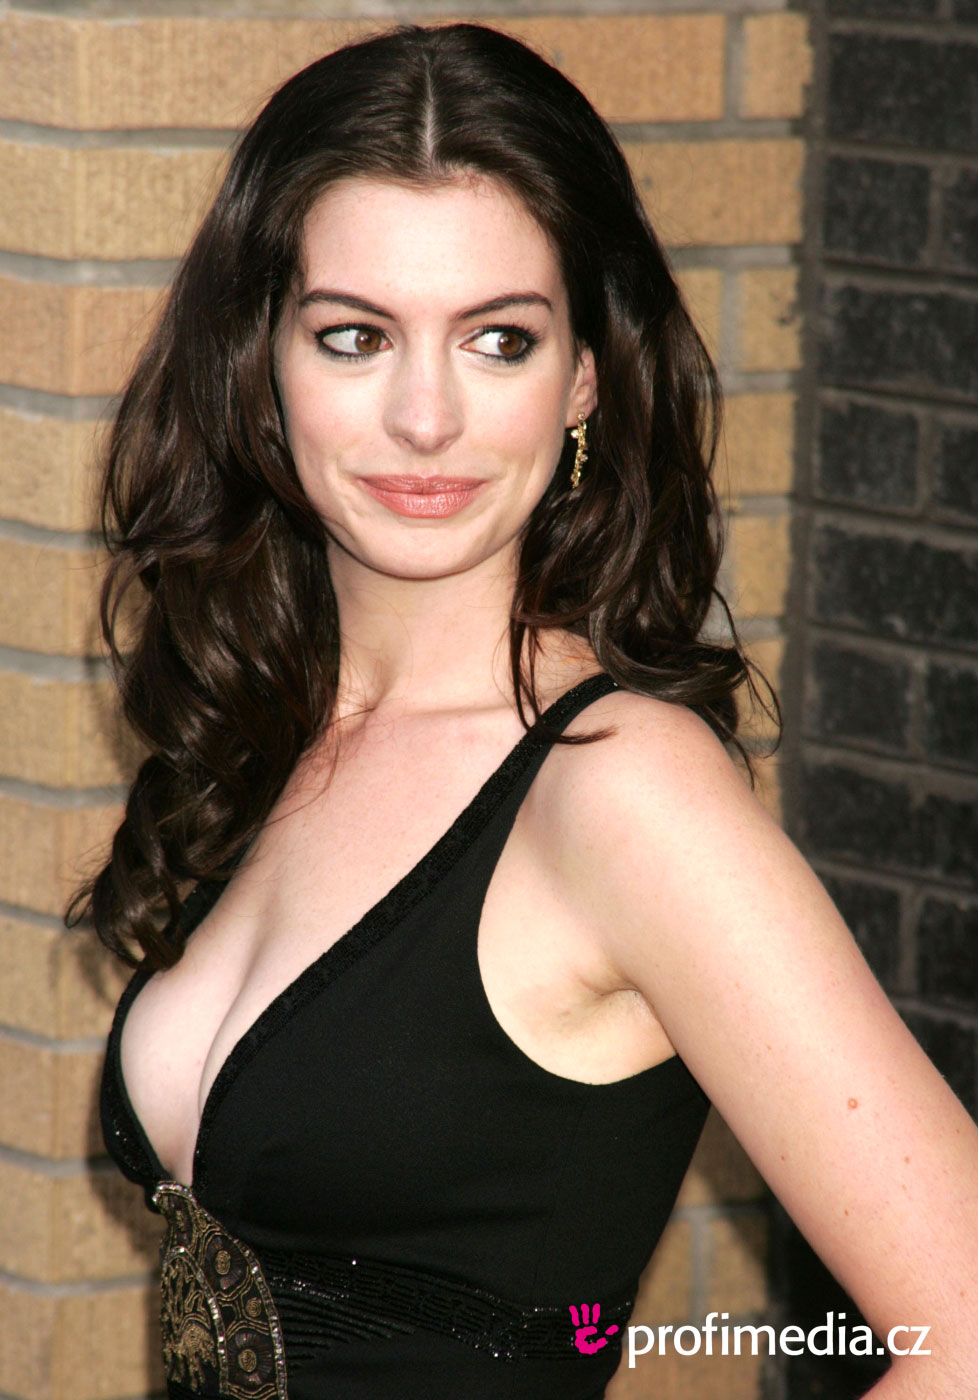 Naked Hot Naked Anna Hathaway Pictures Images